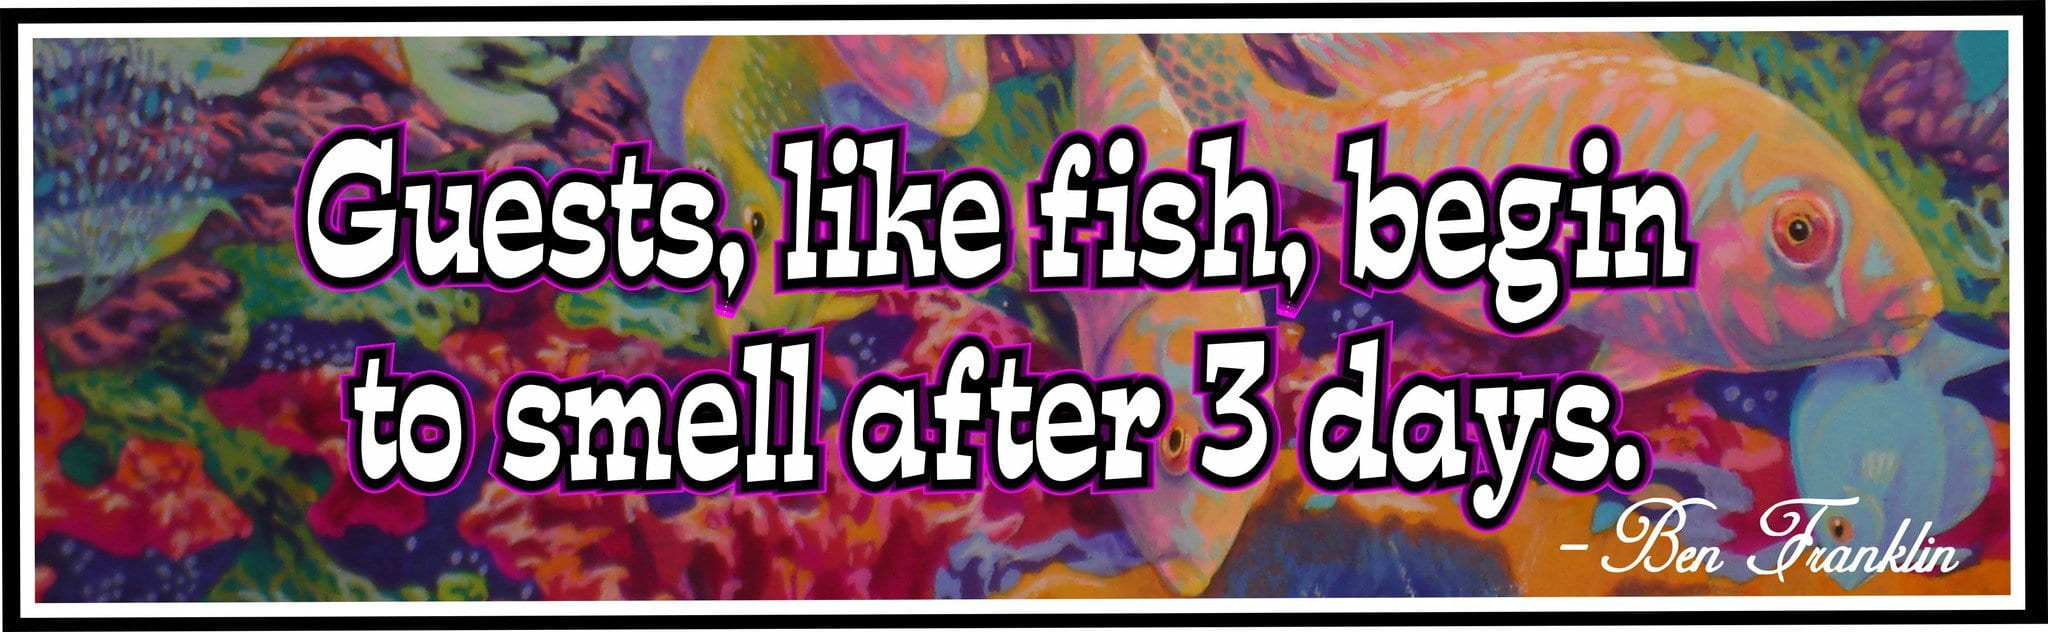 Guests Like Fish Begin to Smell After 3 Days Funny Quote Sign with  Psychedelic Aquarium